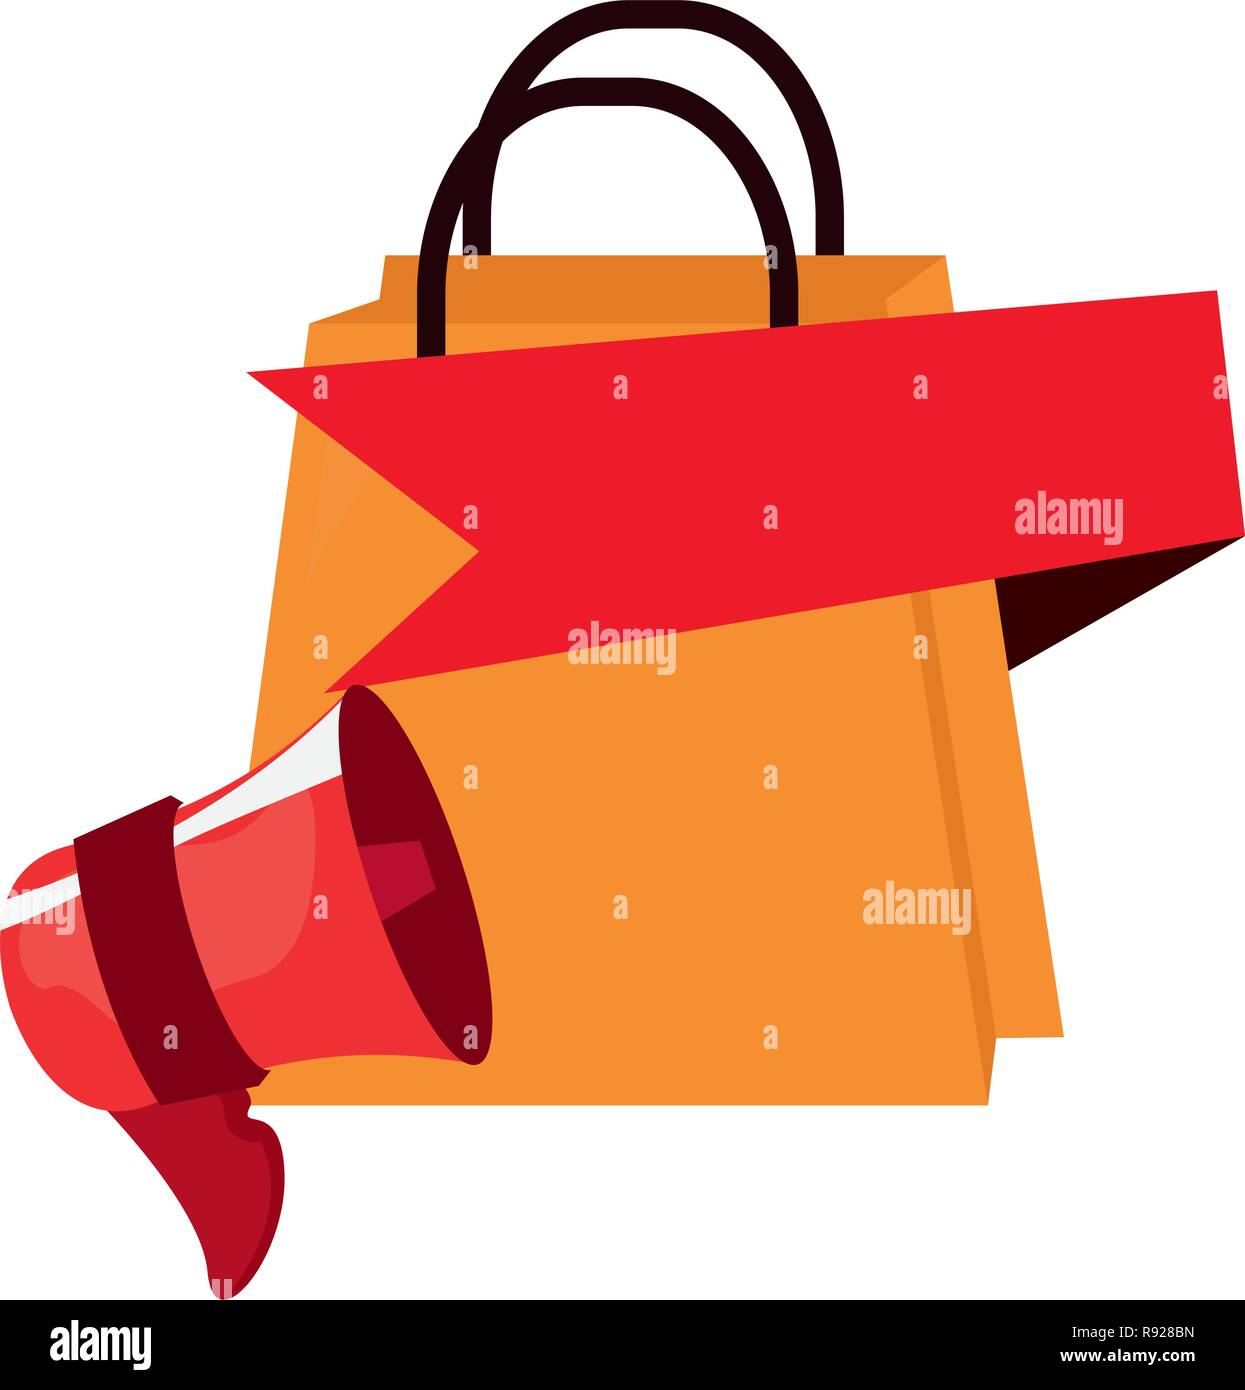 Lautsprecher Online Lautsprecher Online Shopping Bag Banner Vector Illustration Vektor